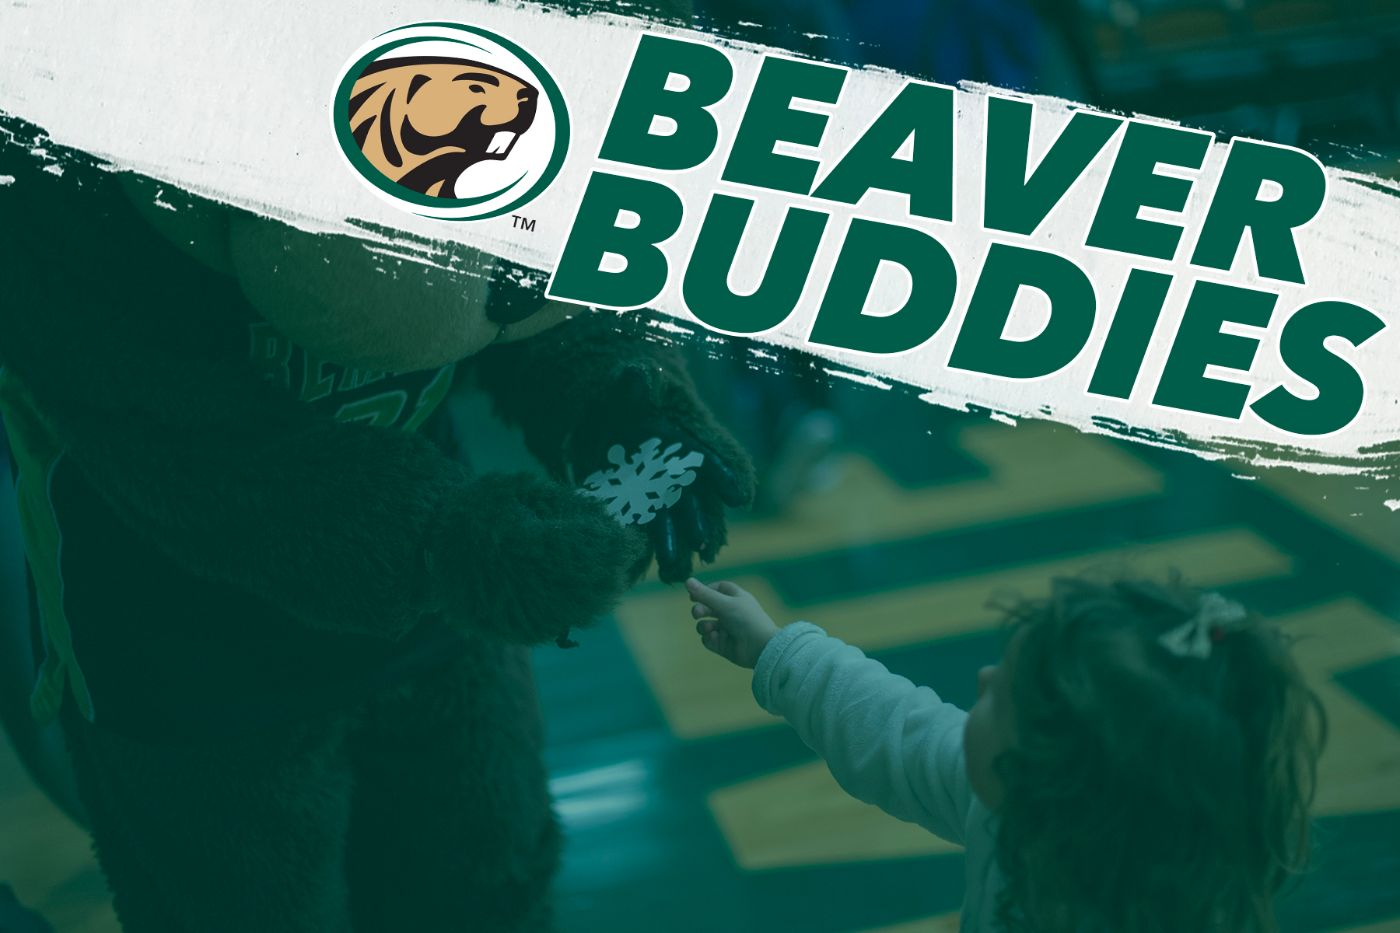 Beaver Men's Basketball releases Fall Beaver Buddies schedule